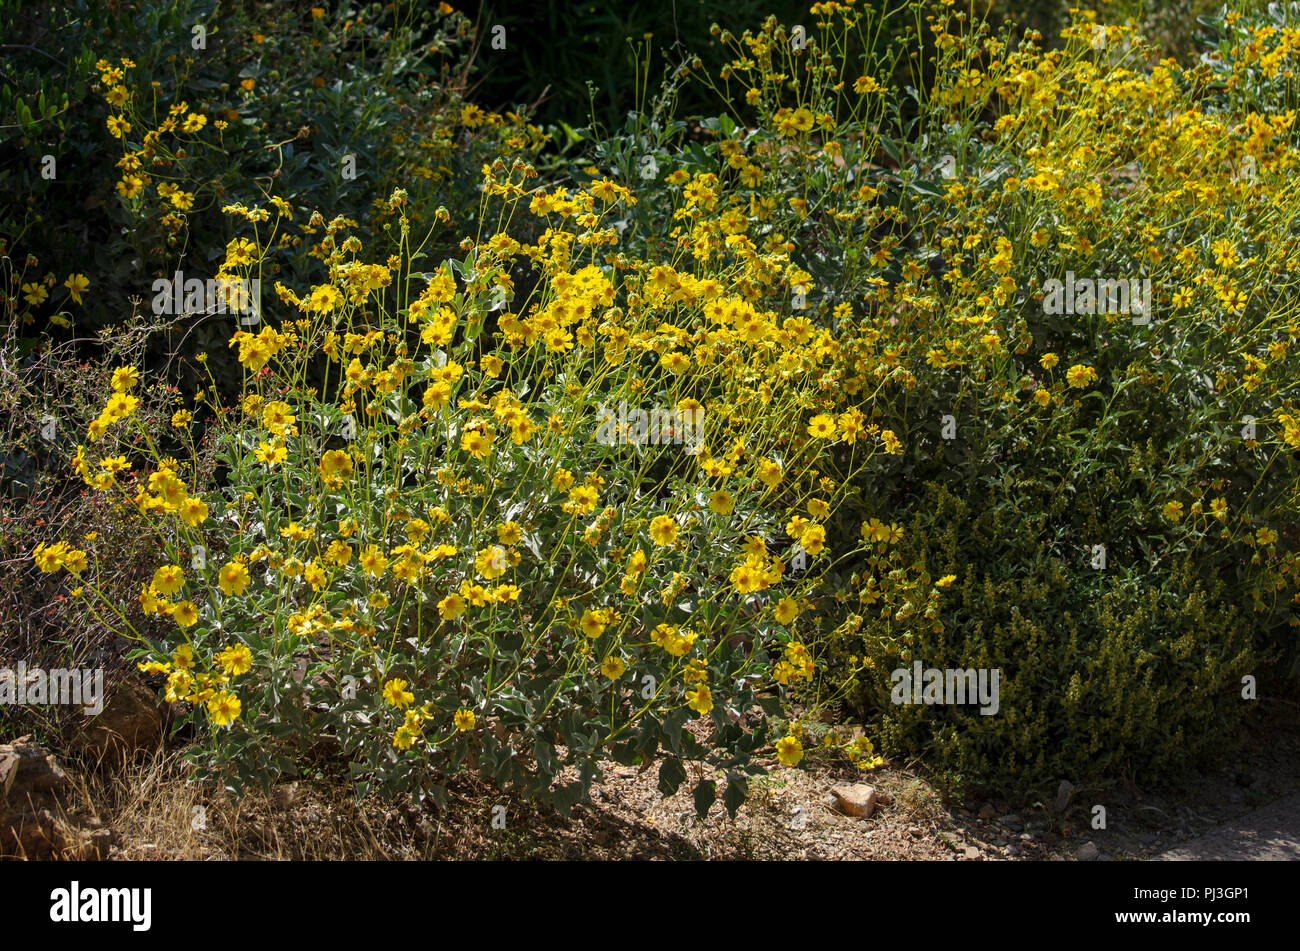 Bushes With Yellow Flowers Stock Photo 217667241 Alamy